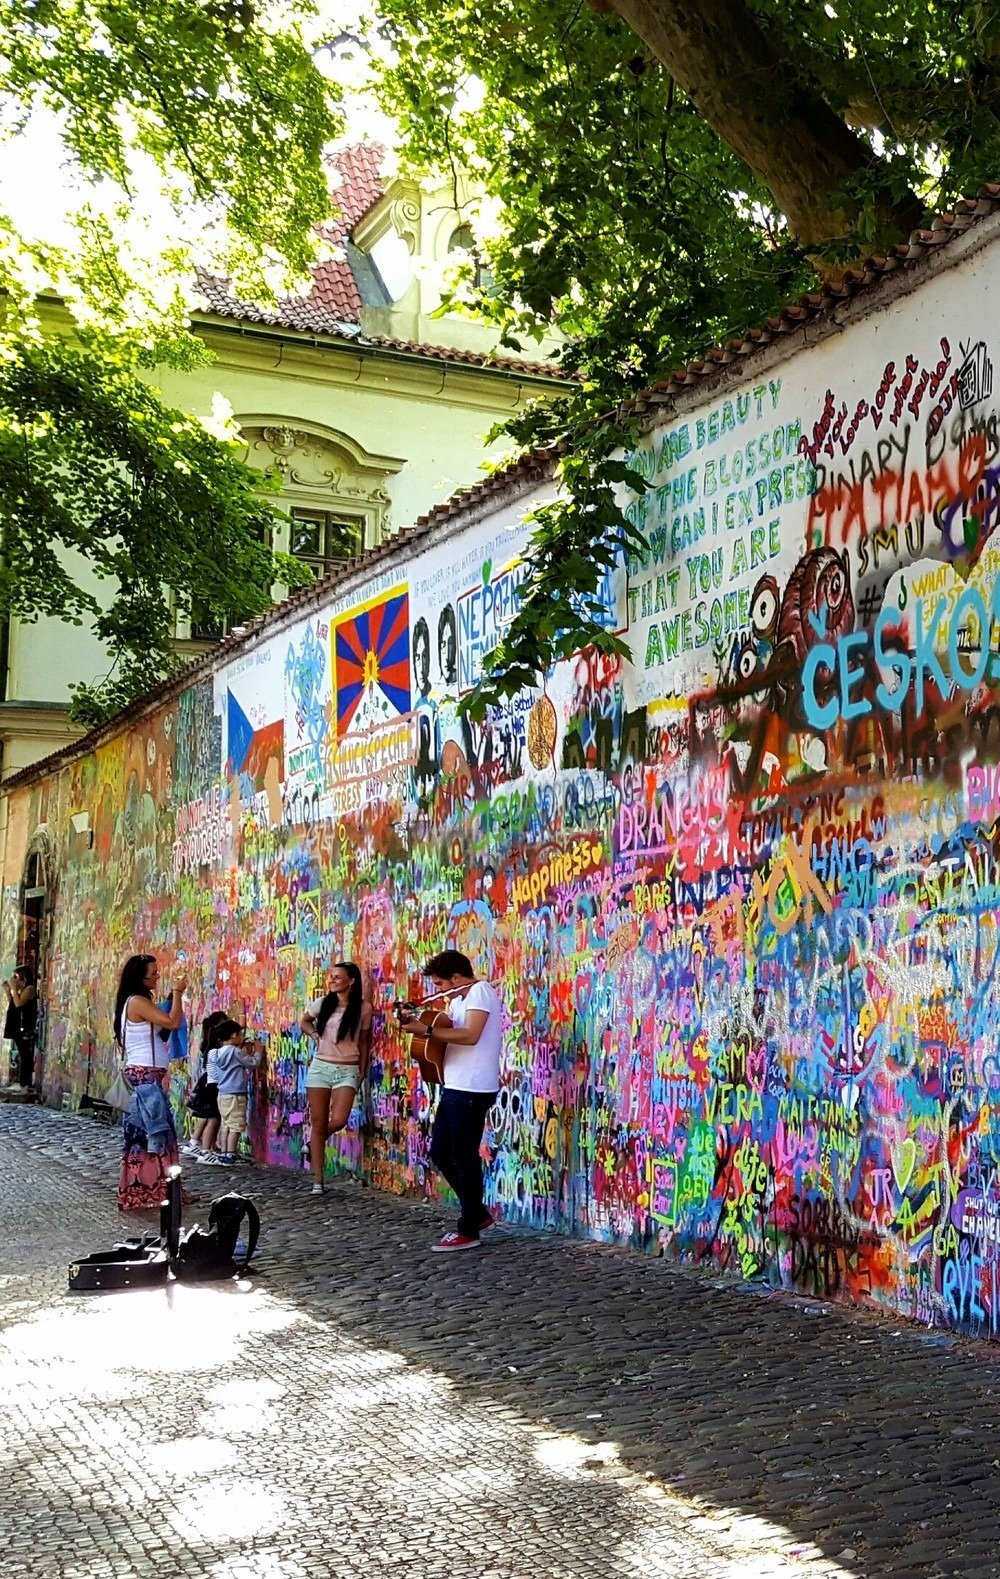 The John Lennon Wall in Prague continue to attract today's youth seeking an outlet for artistic expression.